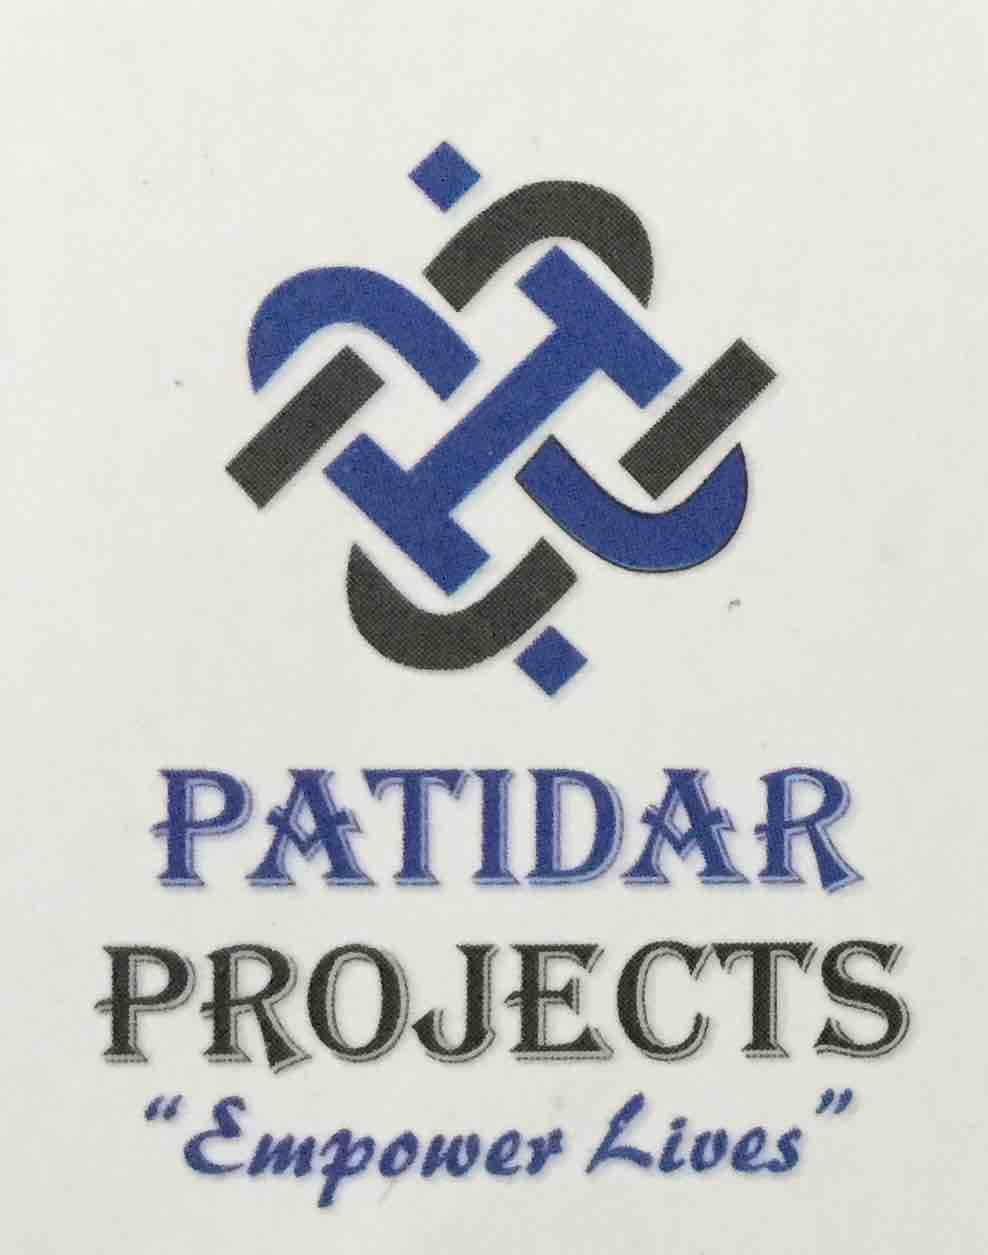 Patidar Projects